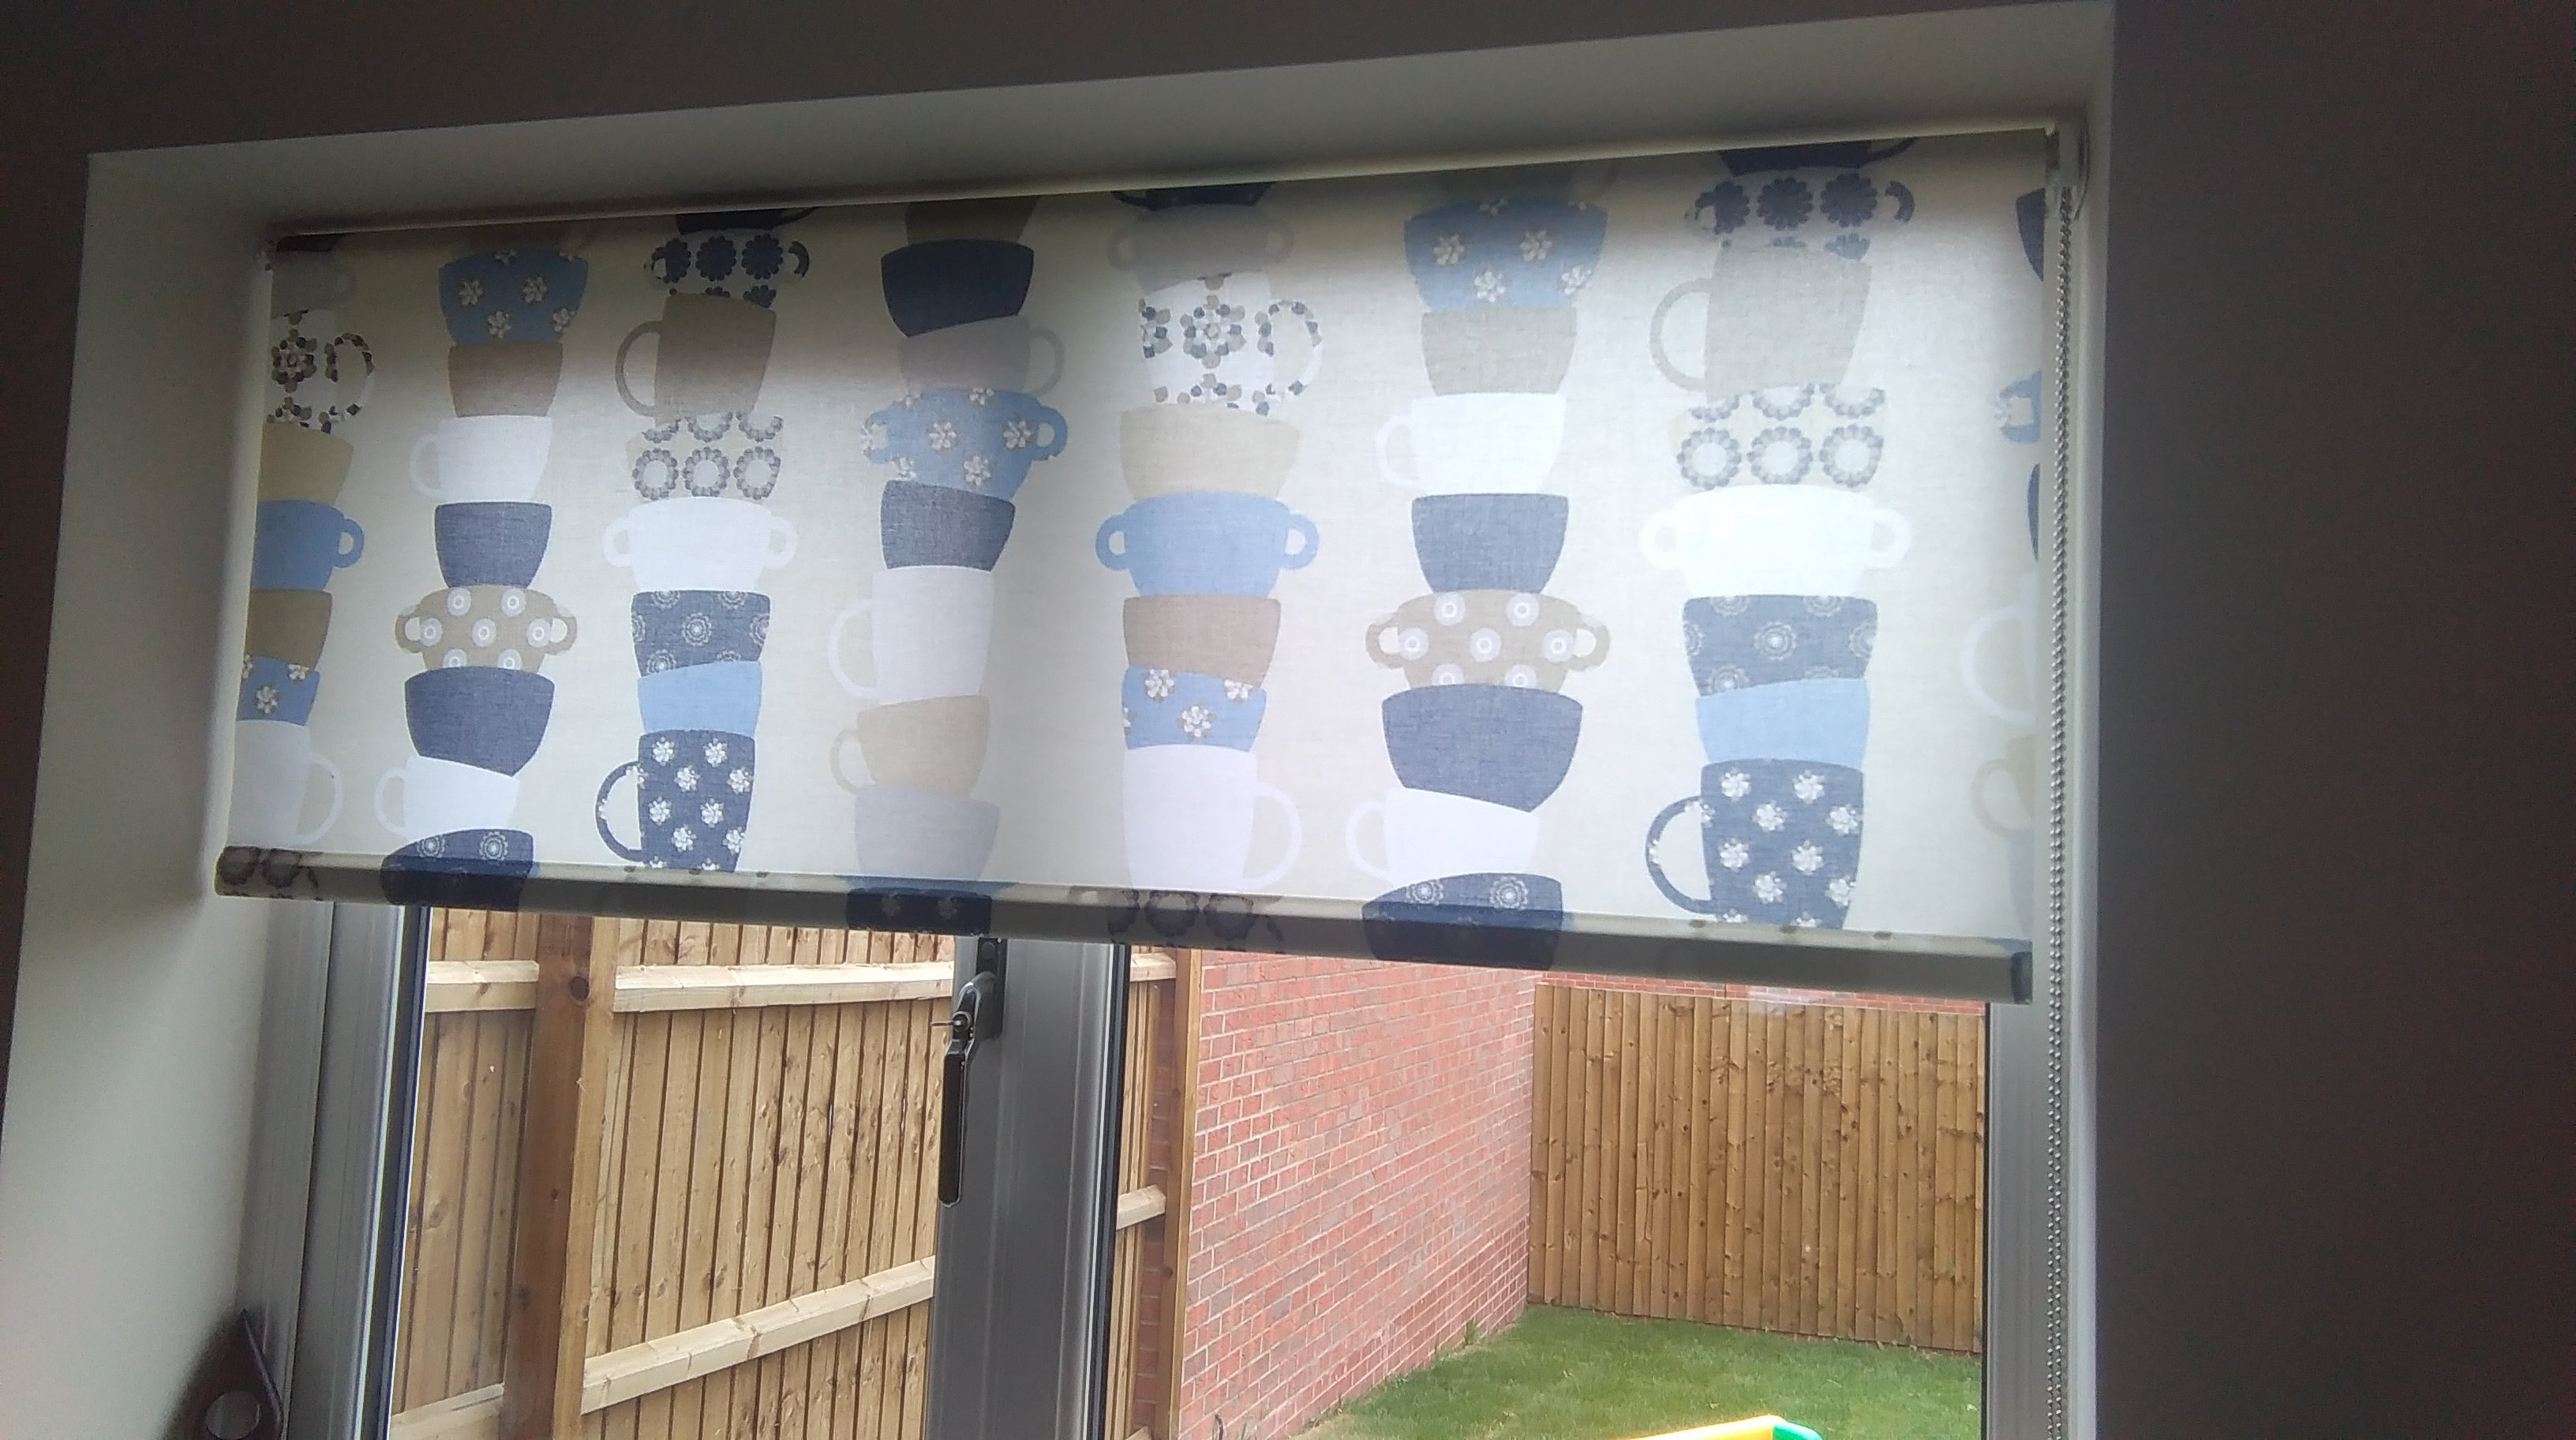 Star Blinds - designer blinds in a room - SUTTON COLDFIELD